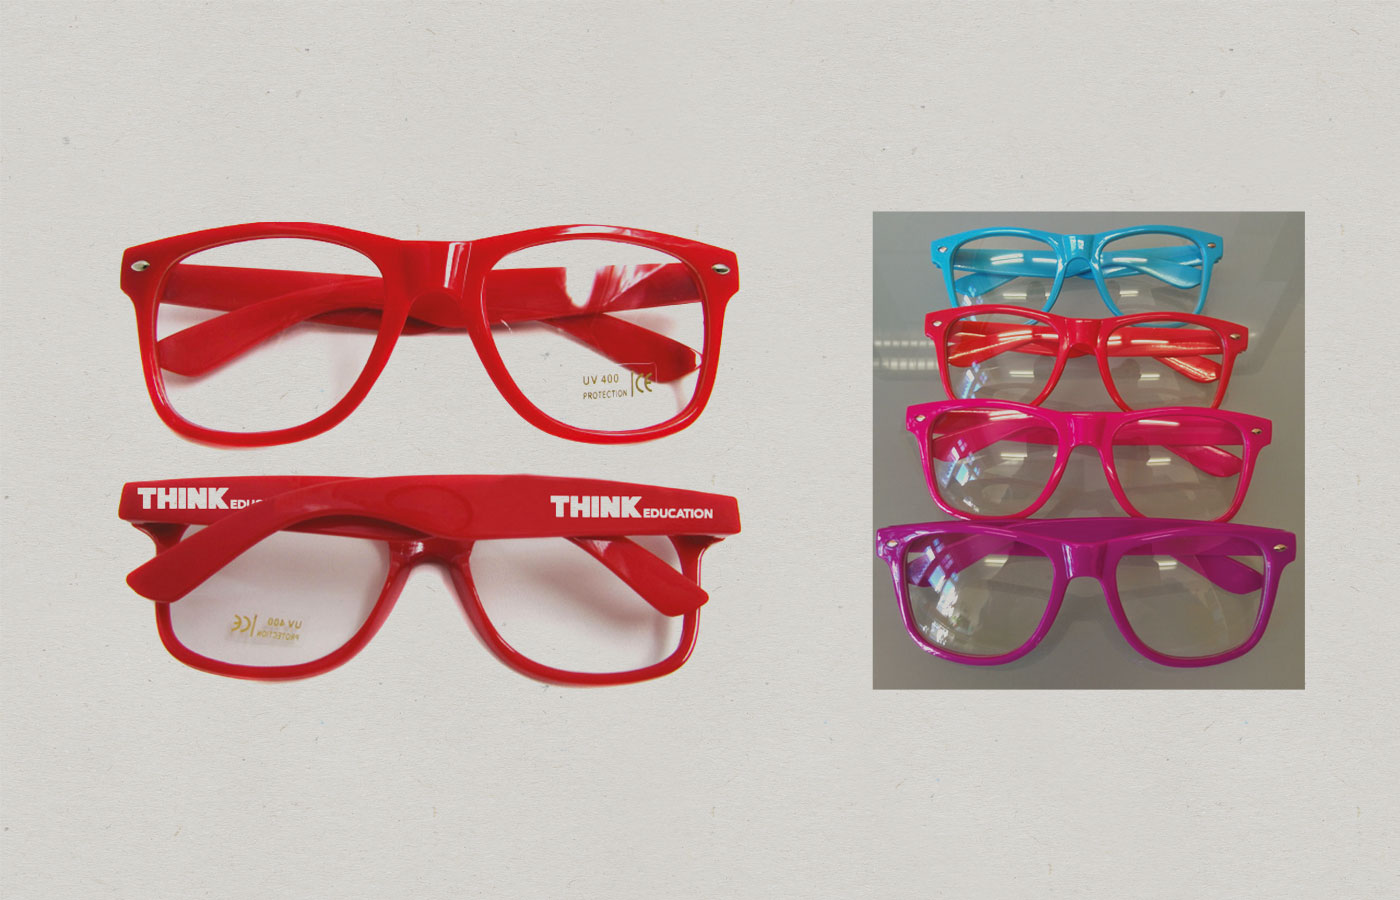 Think-Education-Design-Expo-Merchandise-Glasses